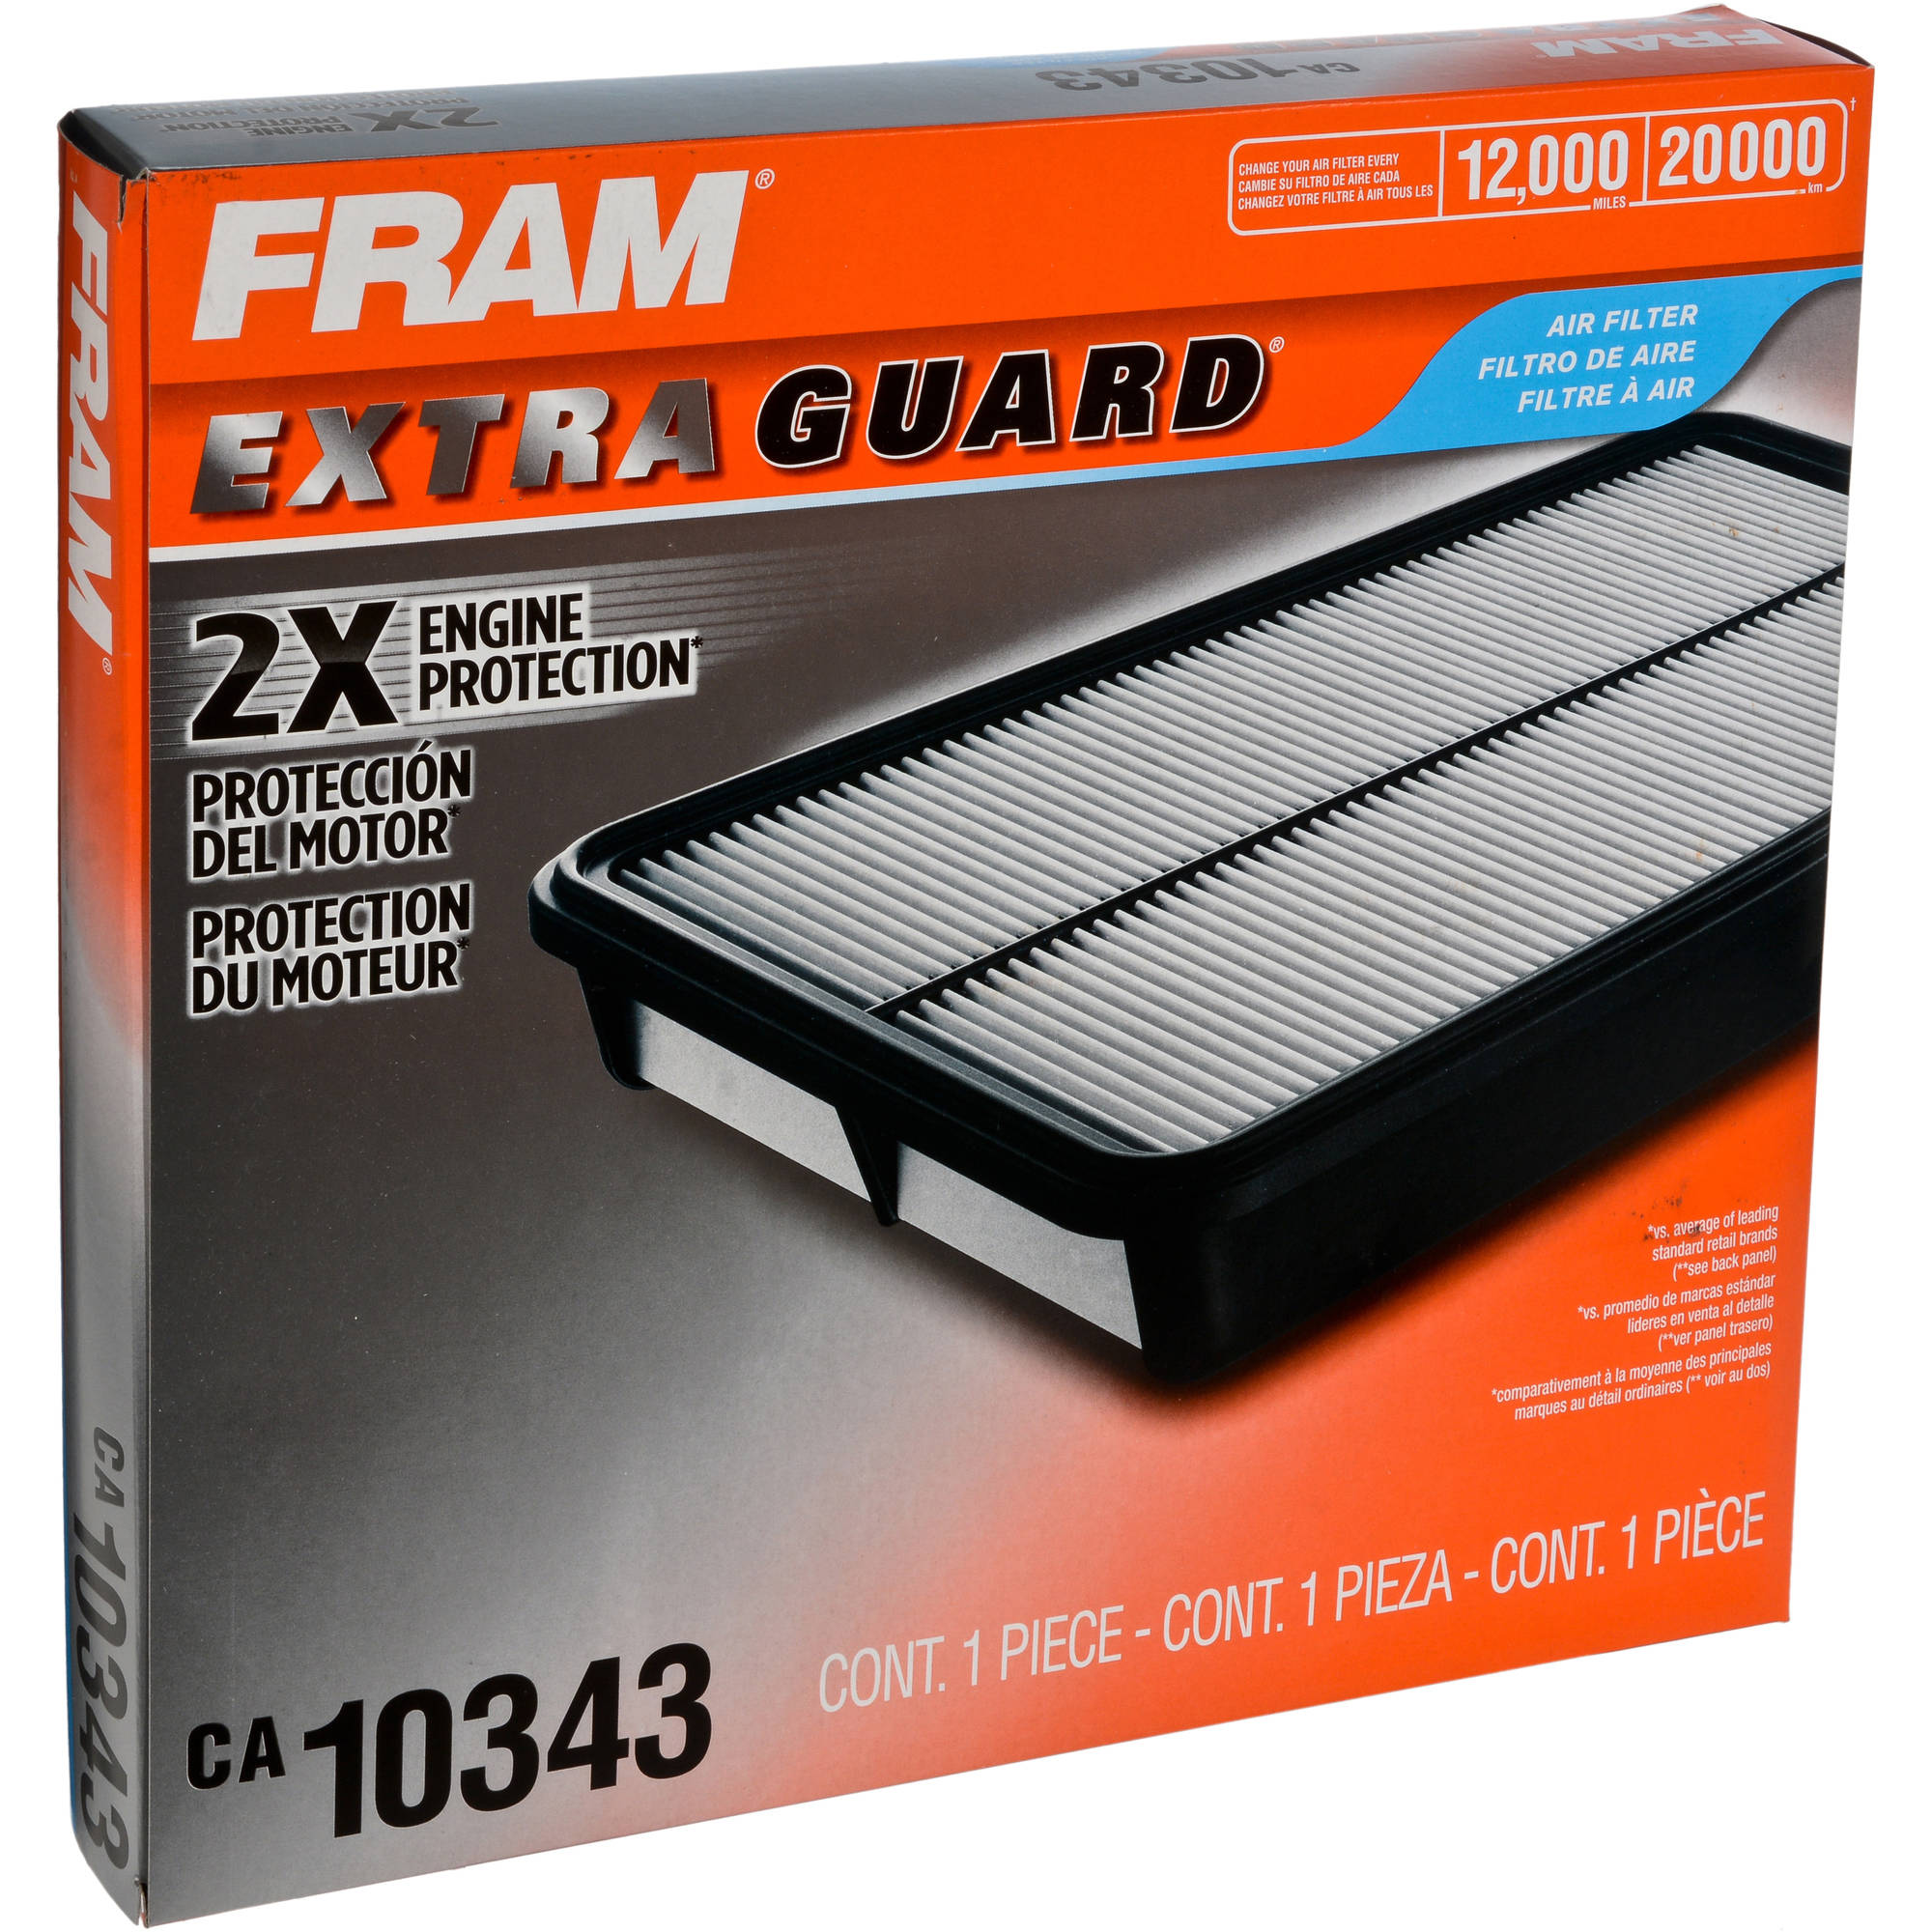 FRAM Extra Guard Air Filter, CA10343